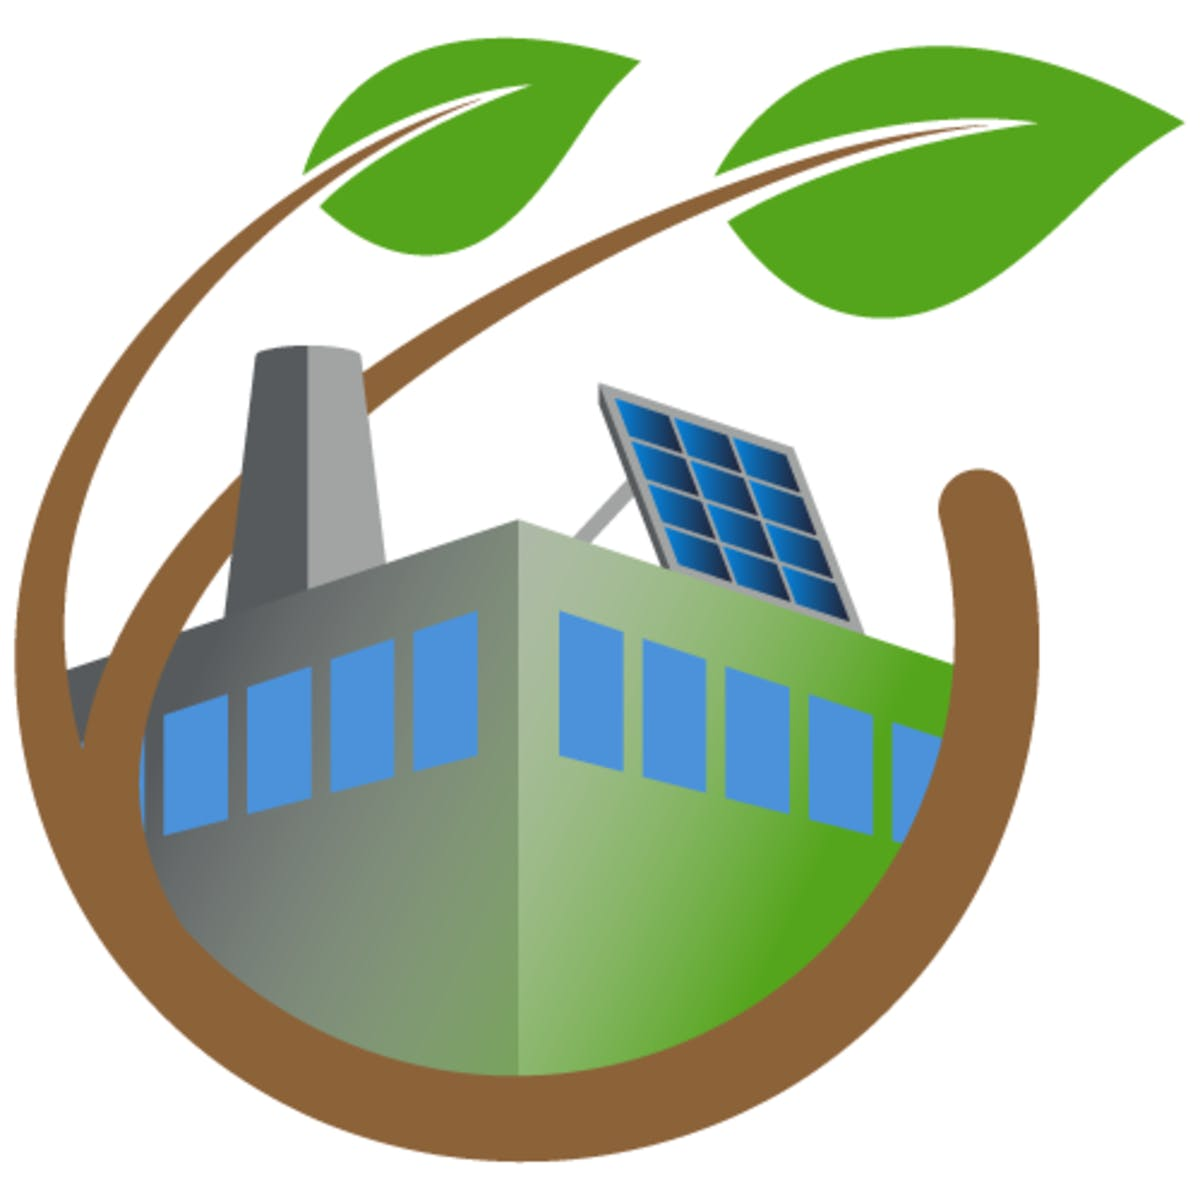 Capstone: Creating A Sustainability Proposal